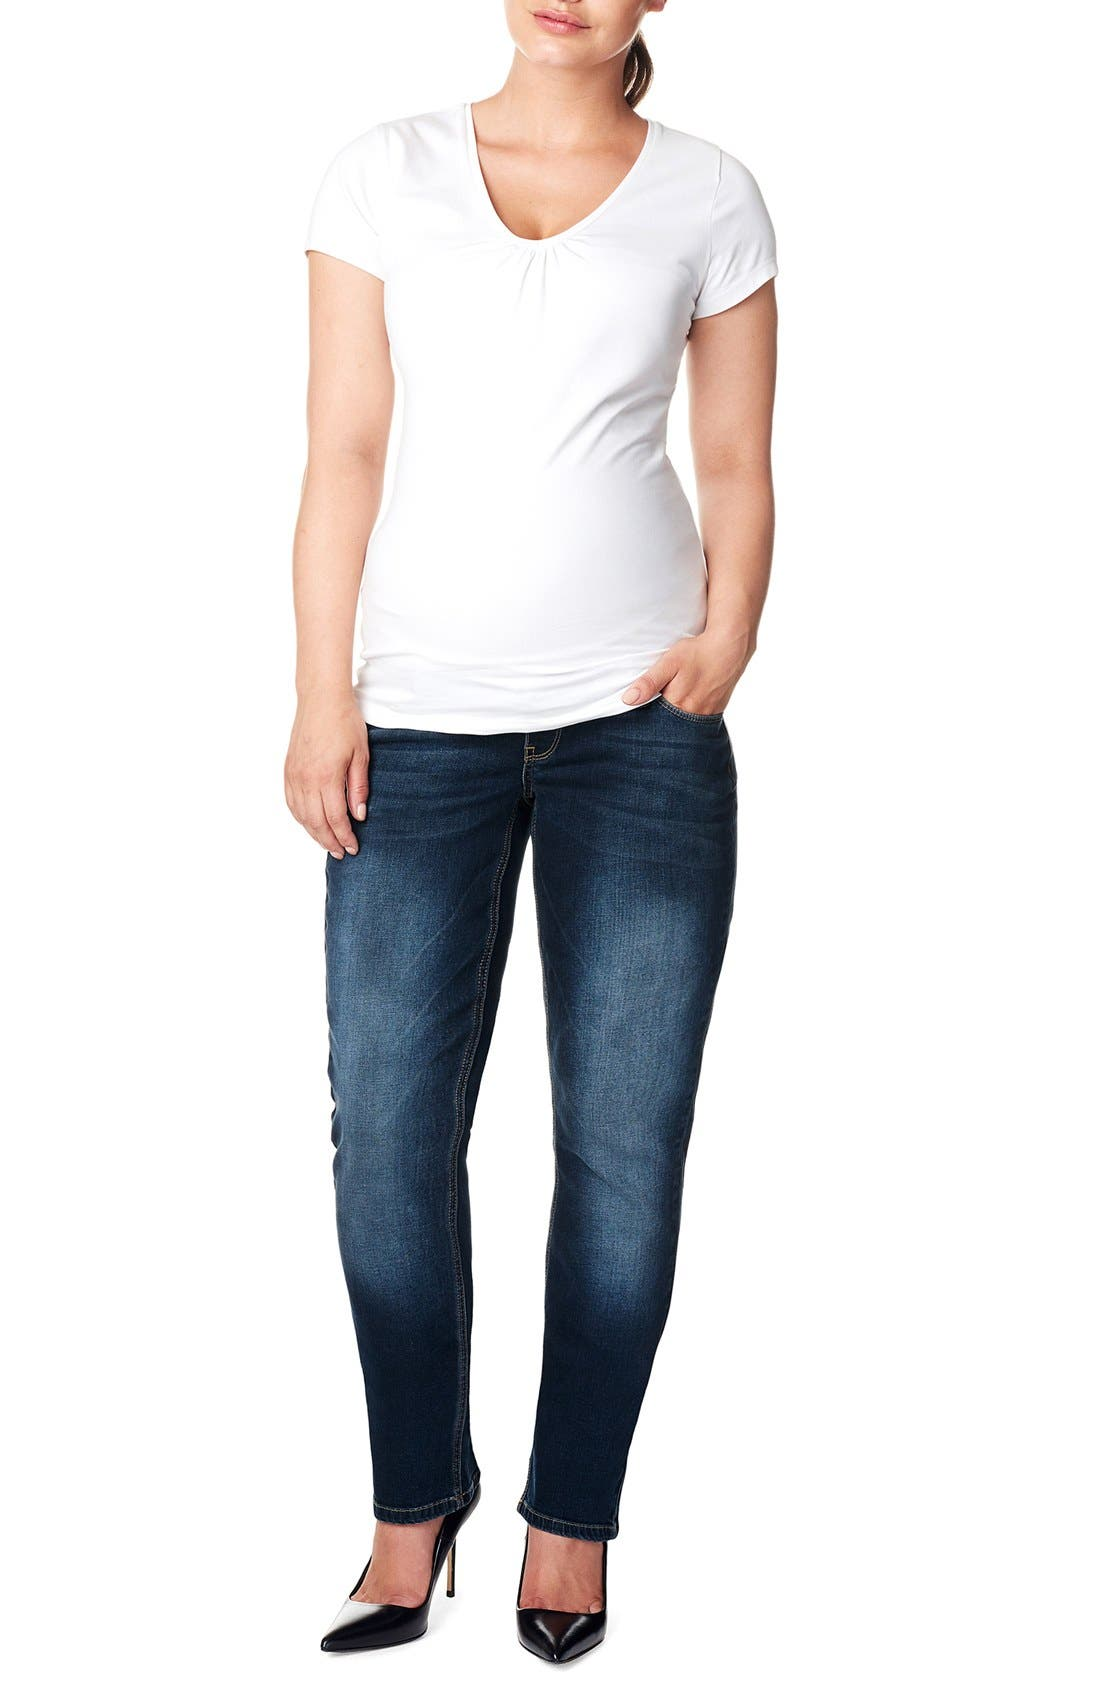 Noppies 'Mena Comfort' Over the Belly Straight Leg Maternity Jeans (Plus Size)